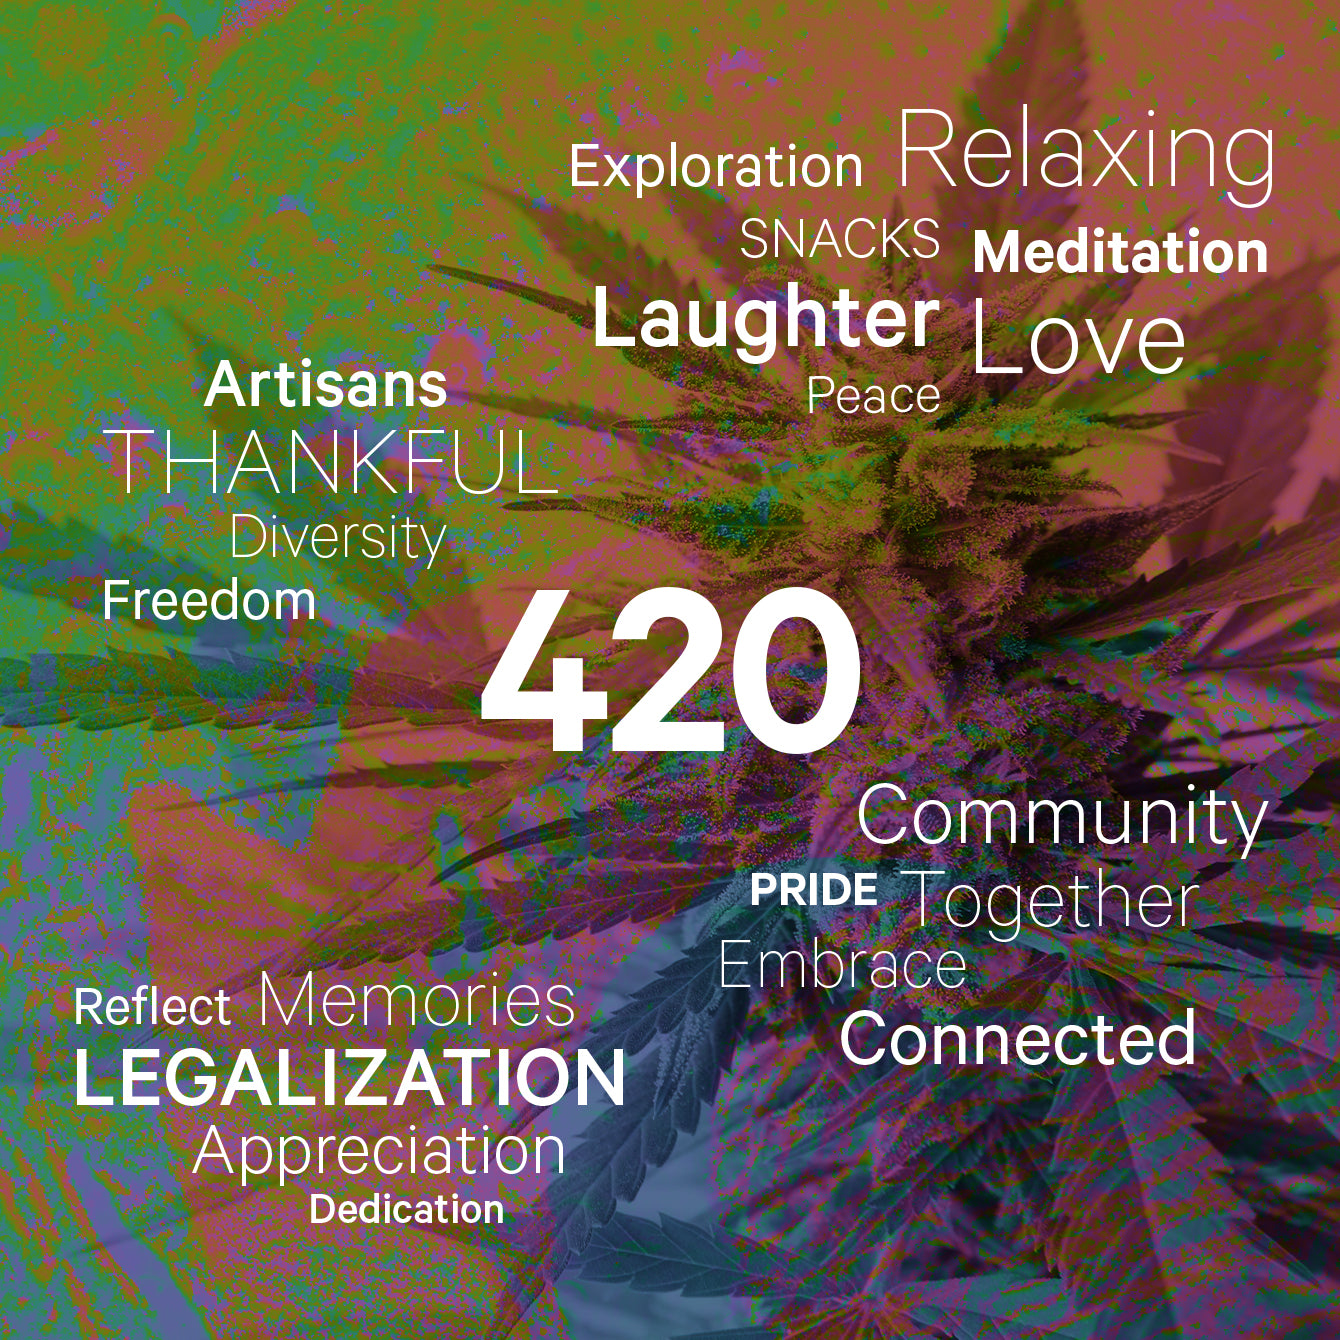 What does 420 mean to you?